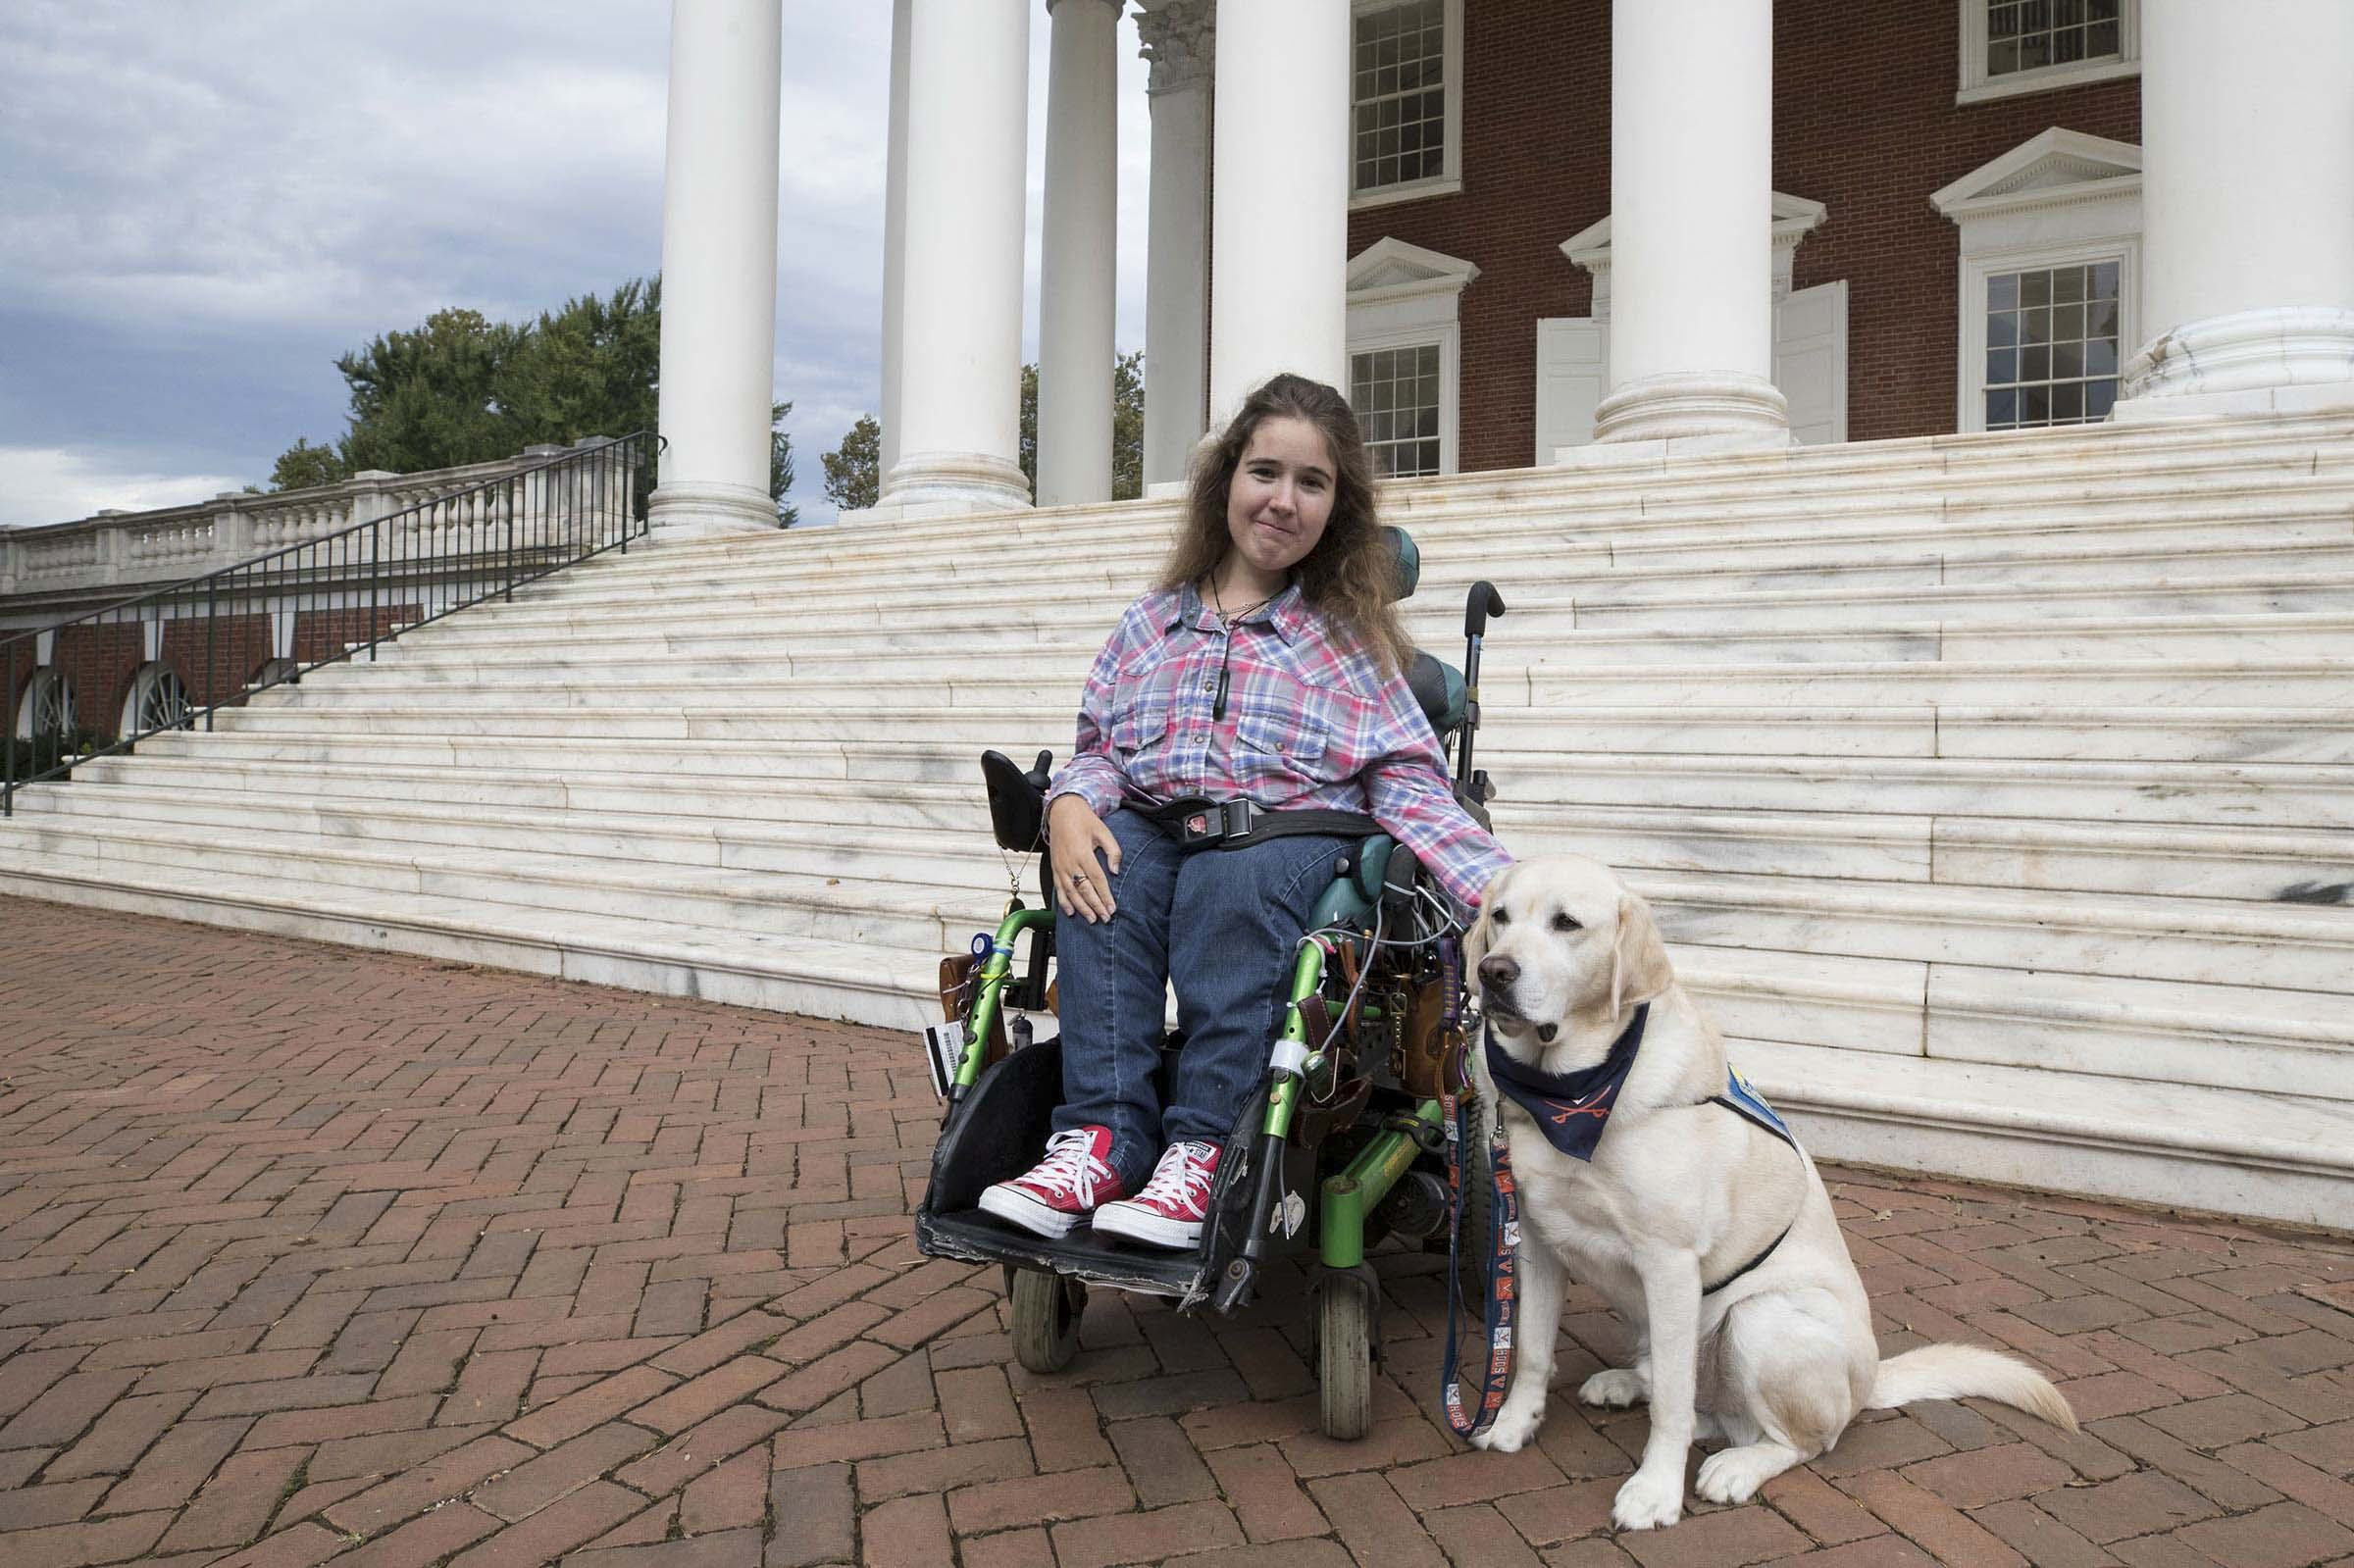 Megale and her service dog Pierre have both enjoyed the move to UVA.